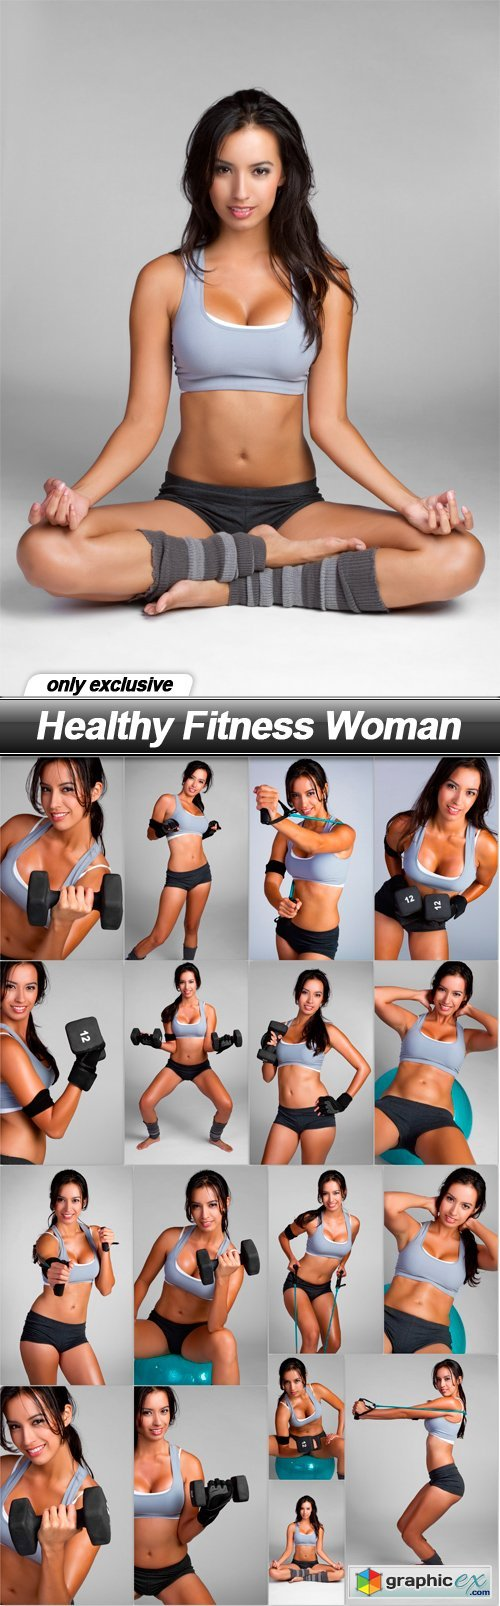 Healthy Fitness Woman - 17 UHQ JPEG